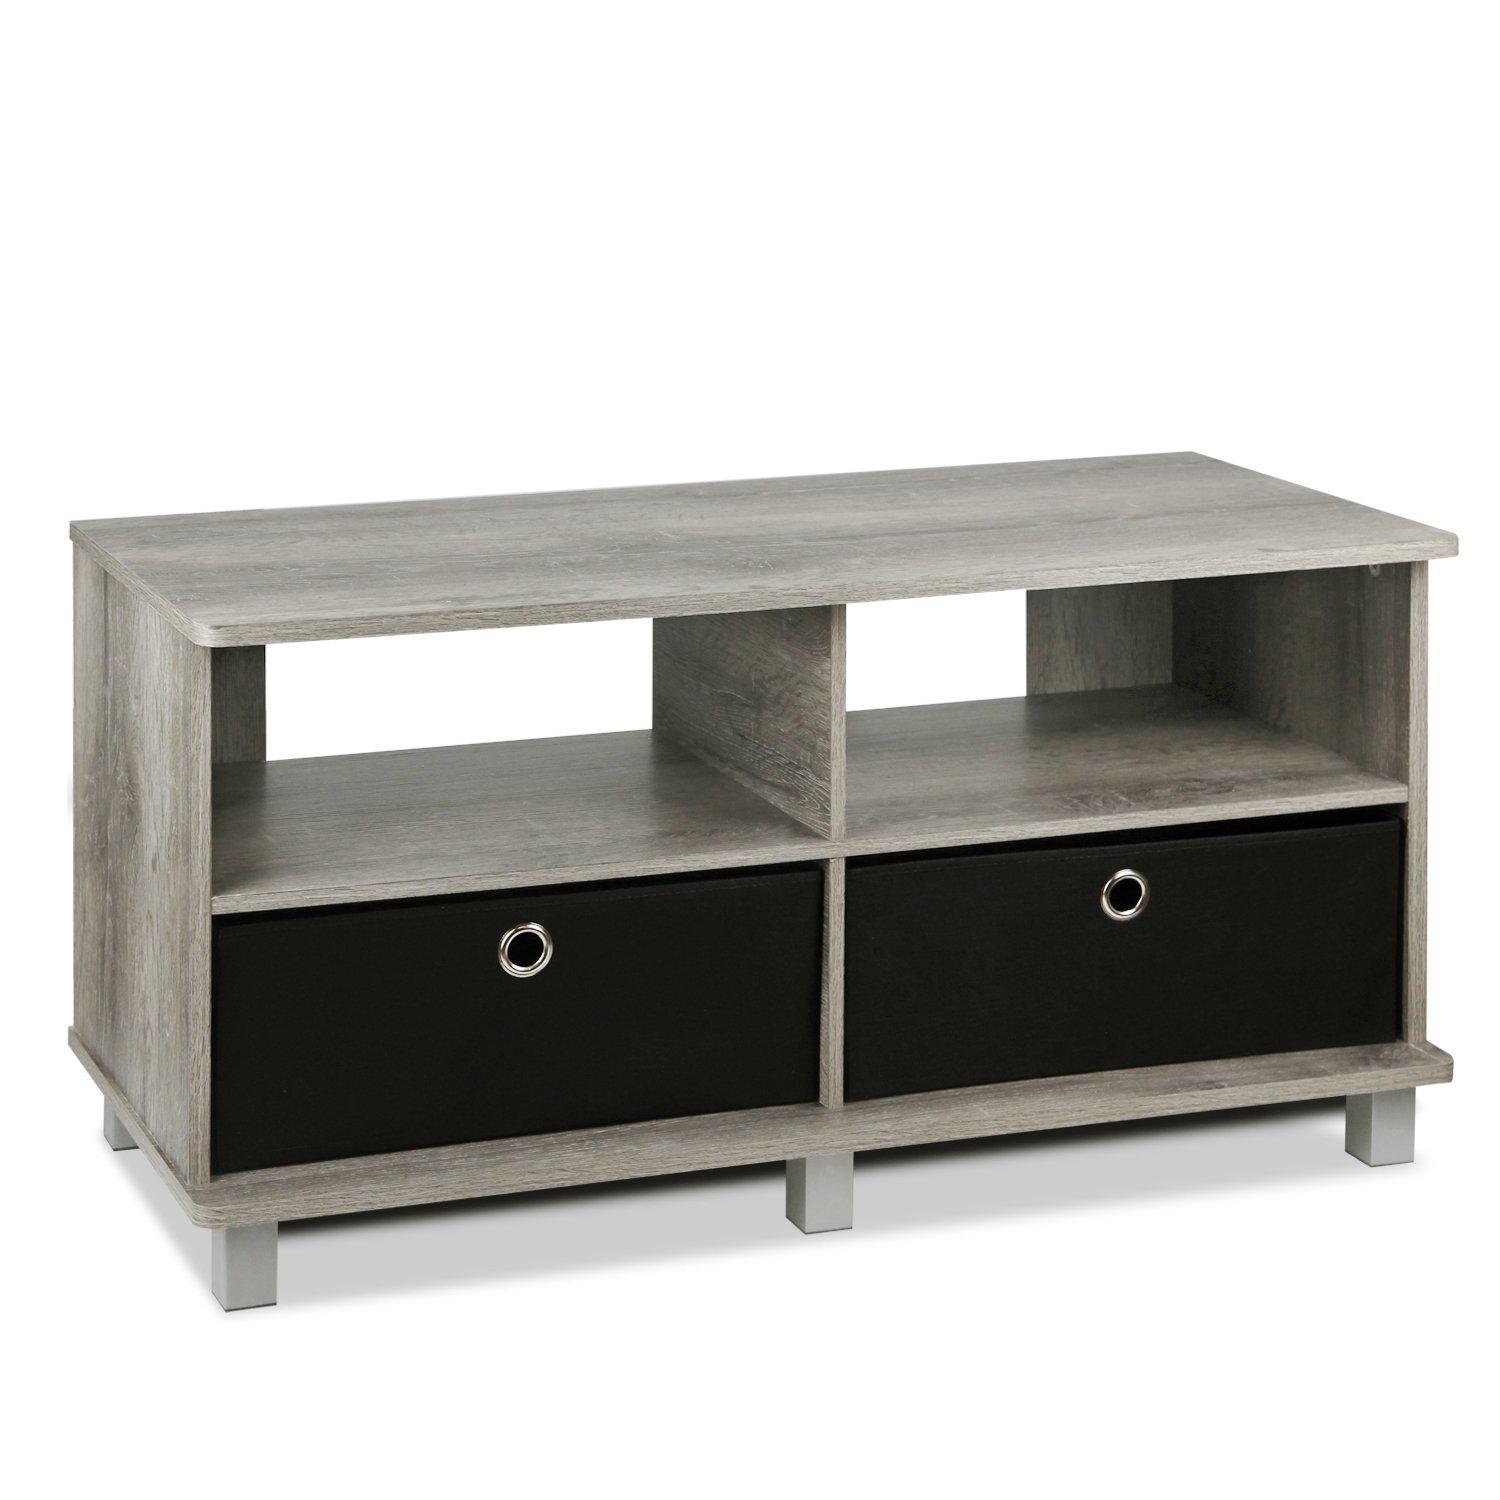 Furinno 11156GYW/BK Entertainment Center, French Oak Grey/Black by Furinno